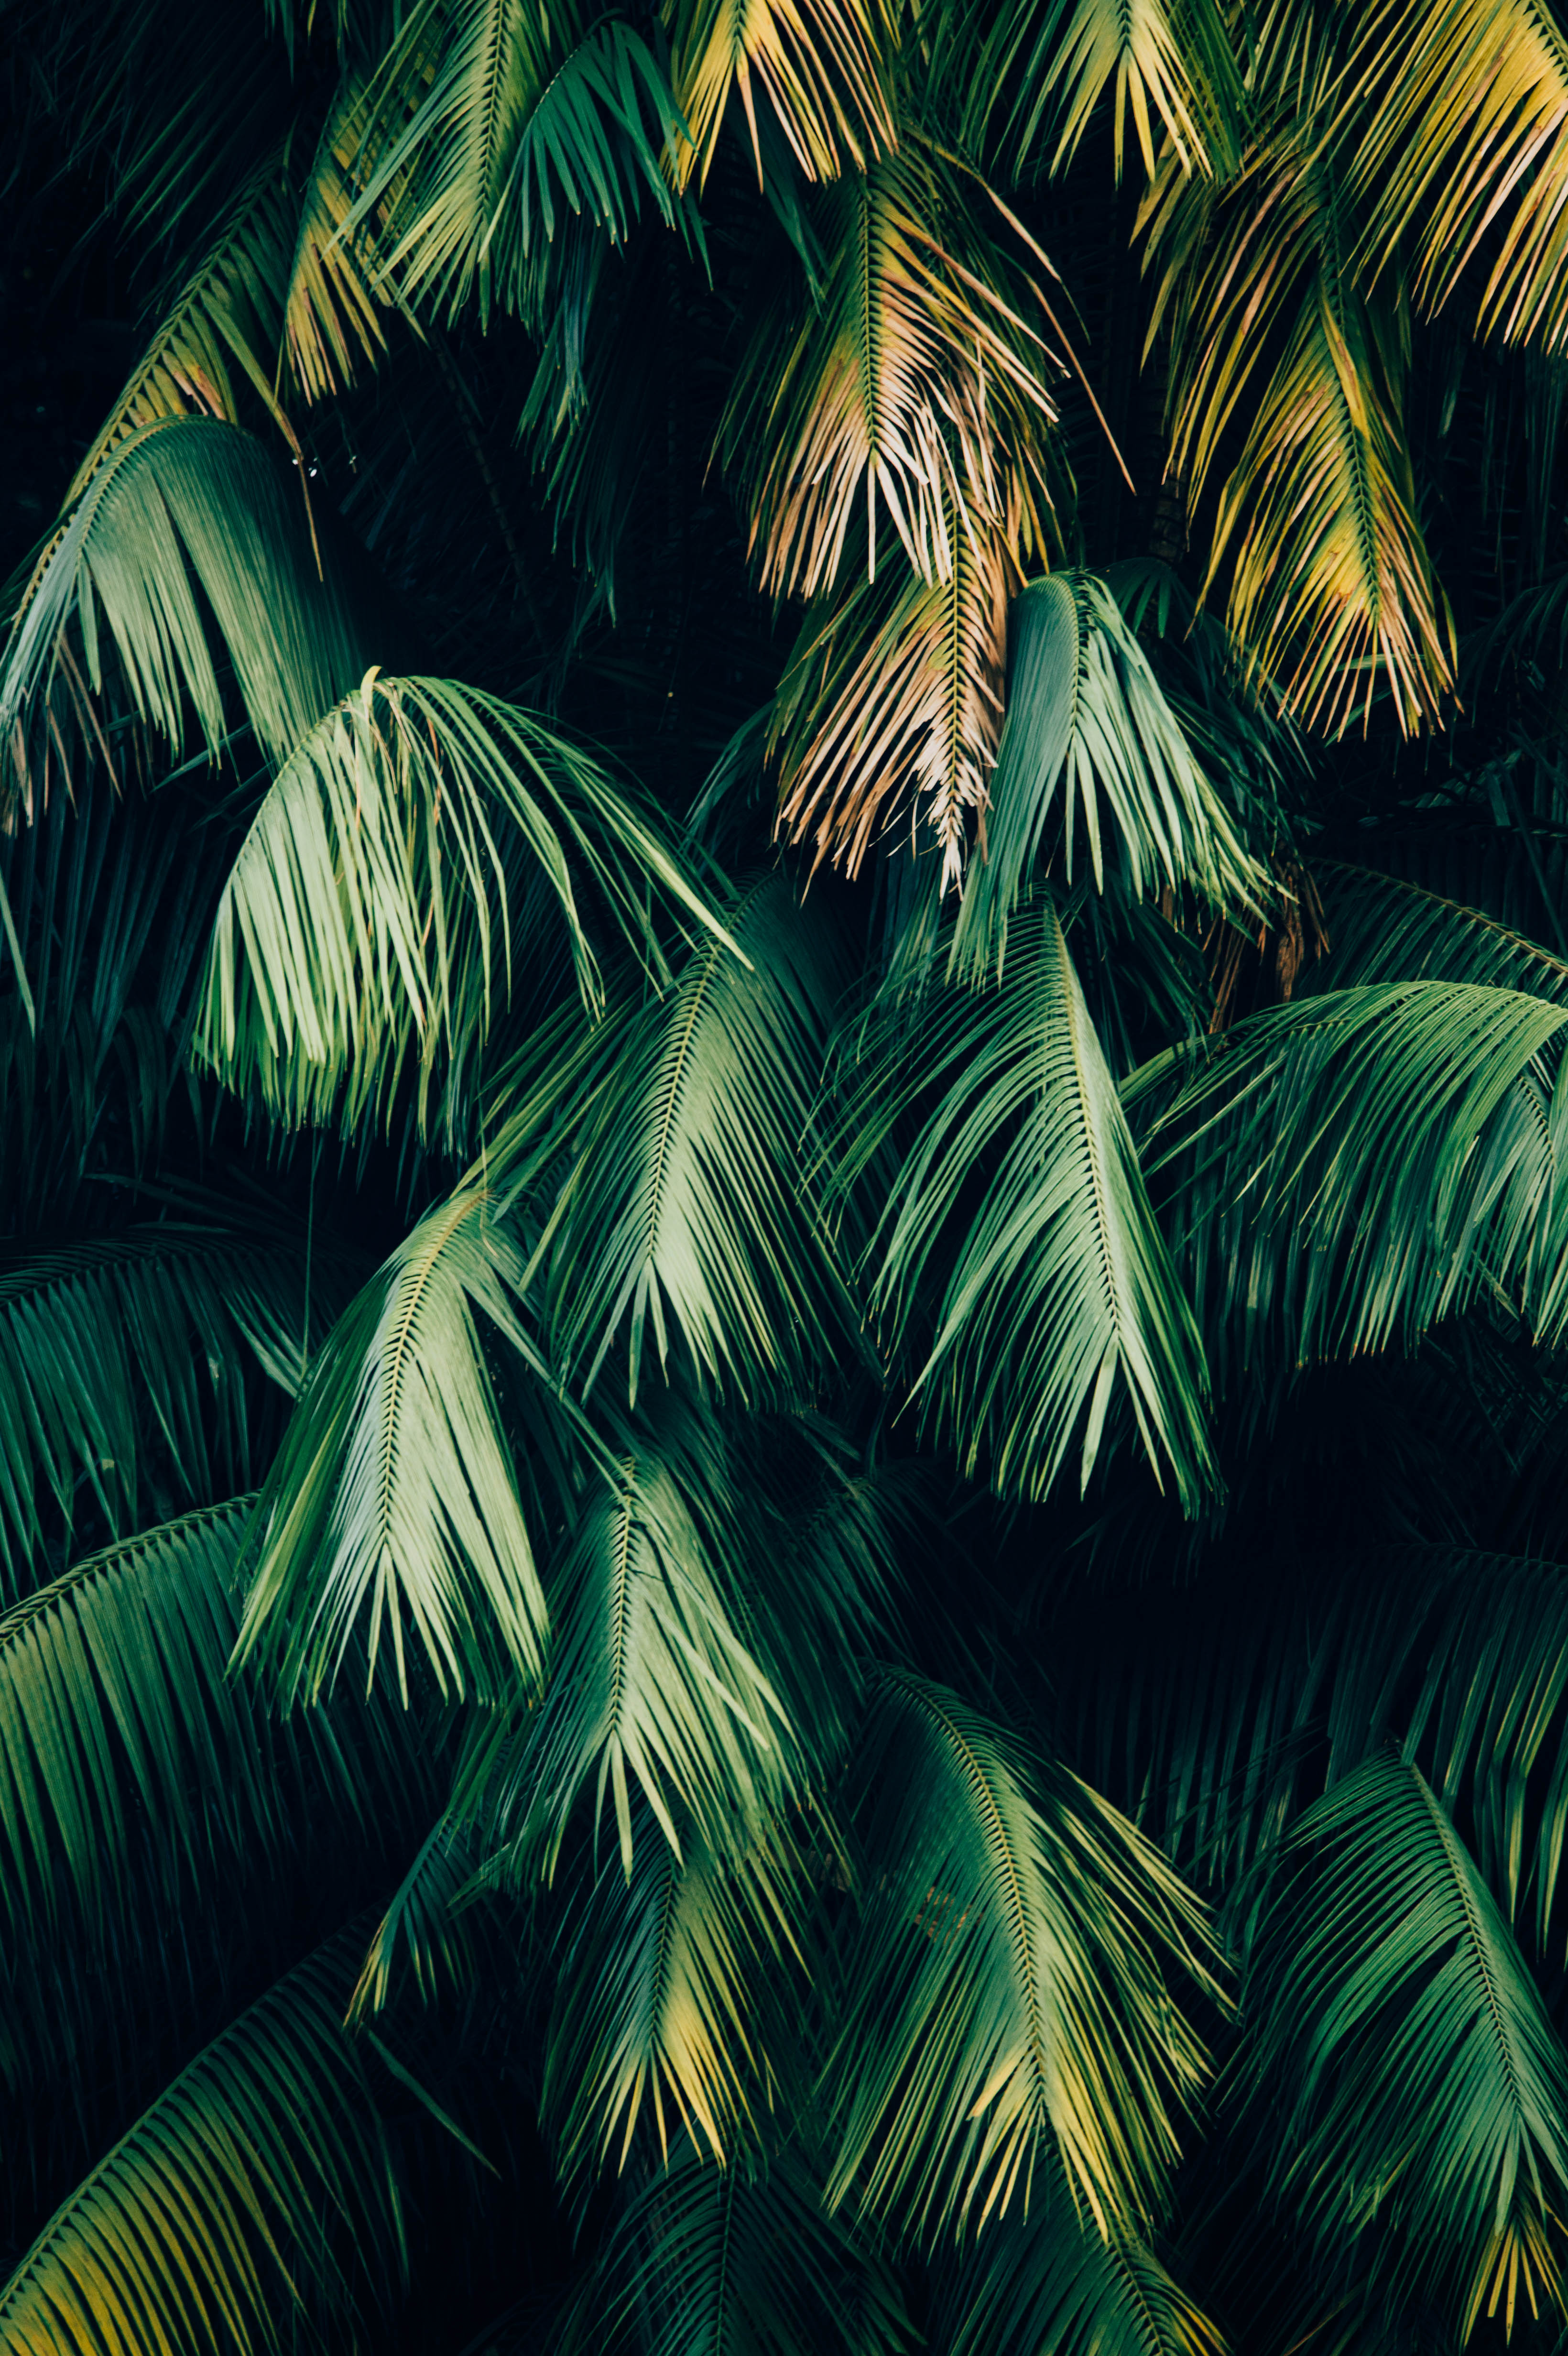 Android Wallpapers   Find your next android wallpaper on Unsplash     green leafed trees